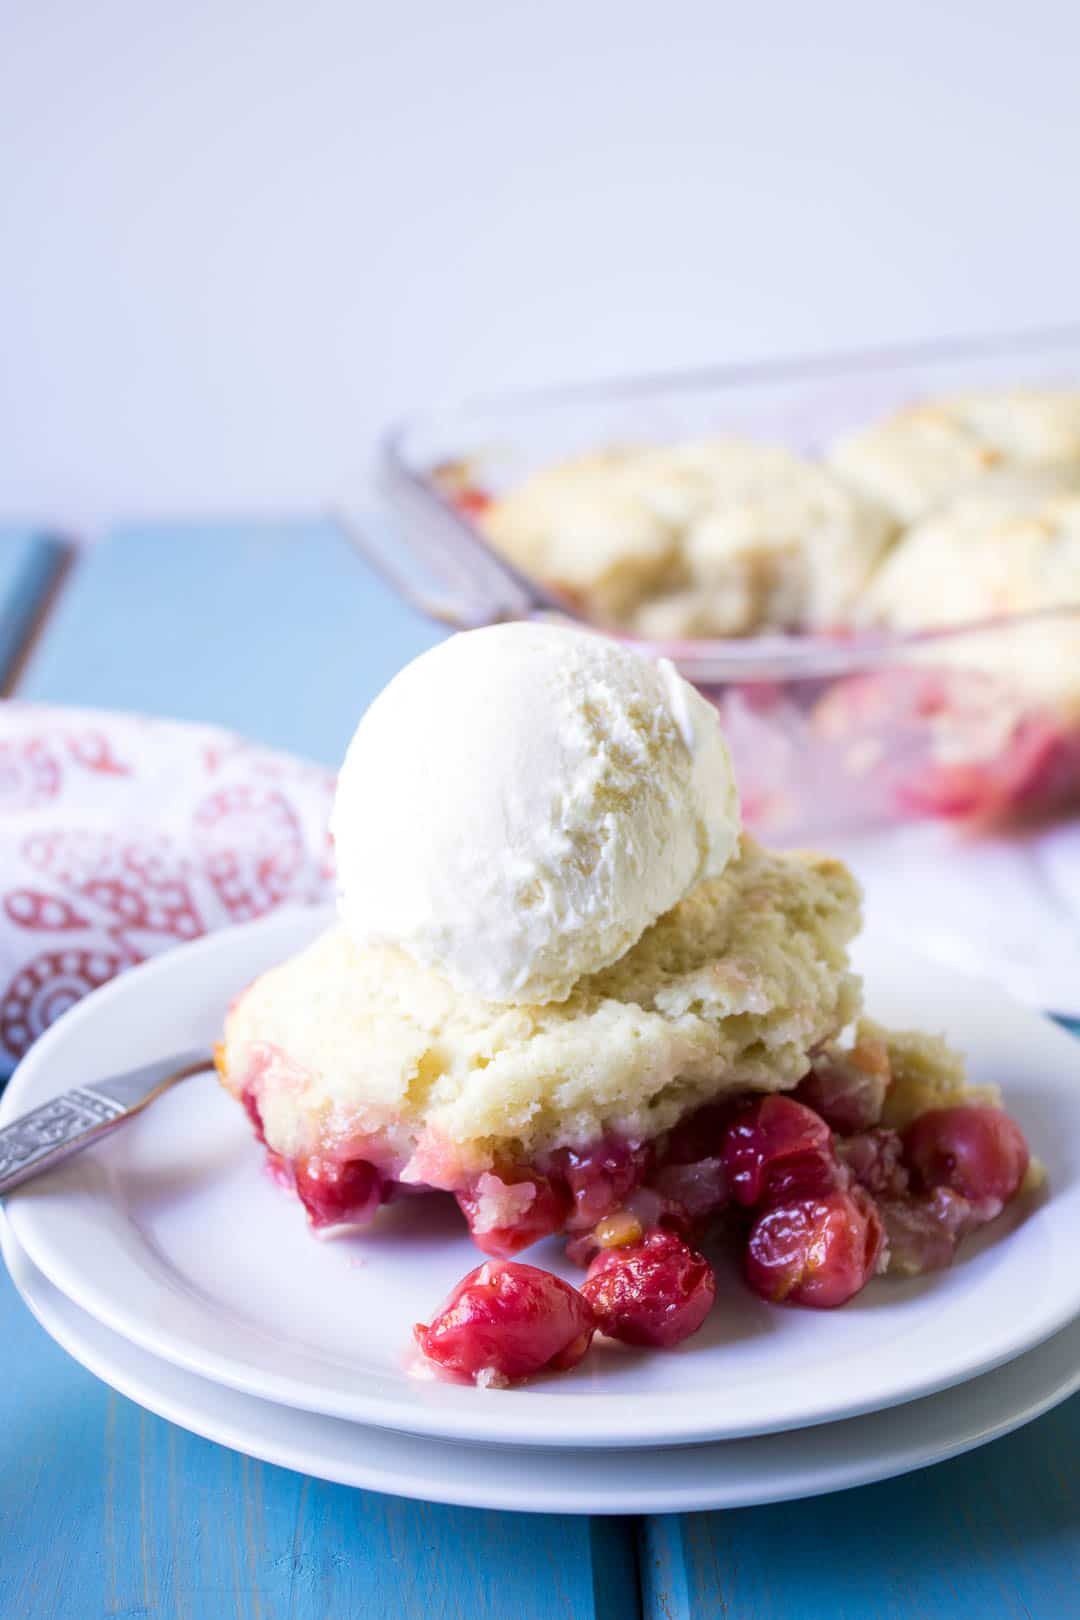 Cherry Cobbler Dessert Recipe